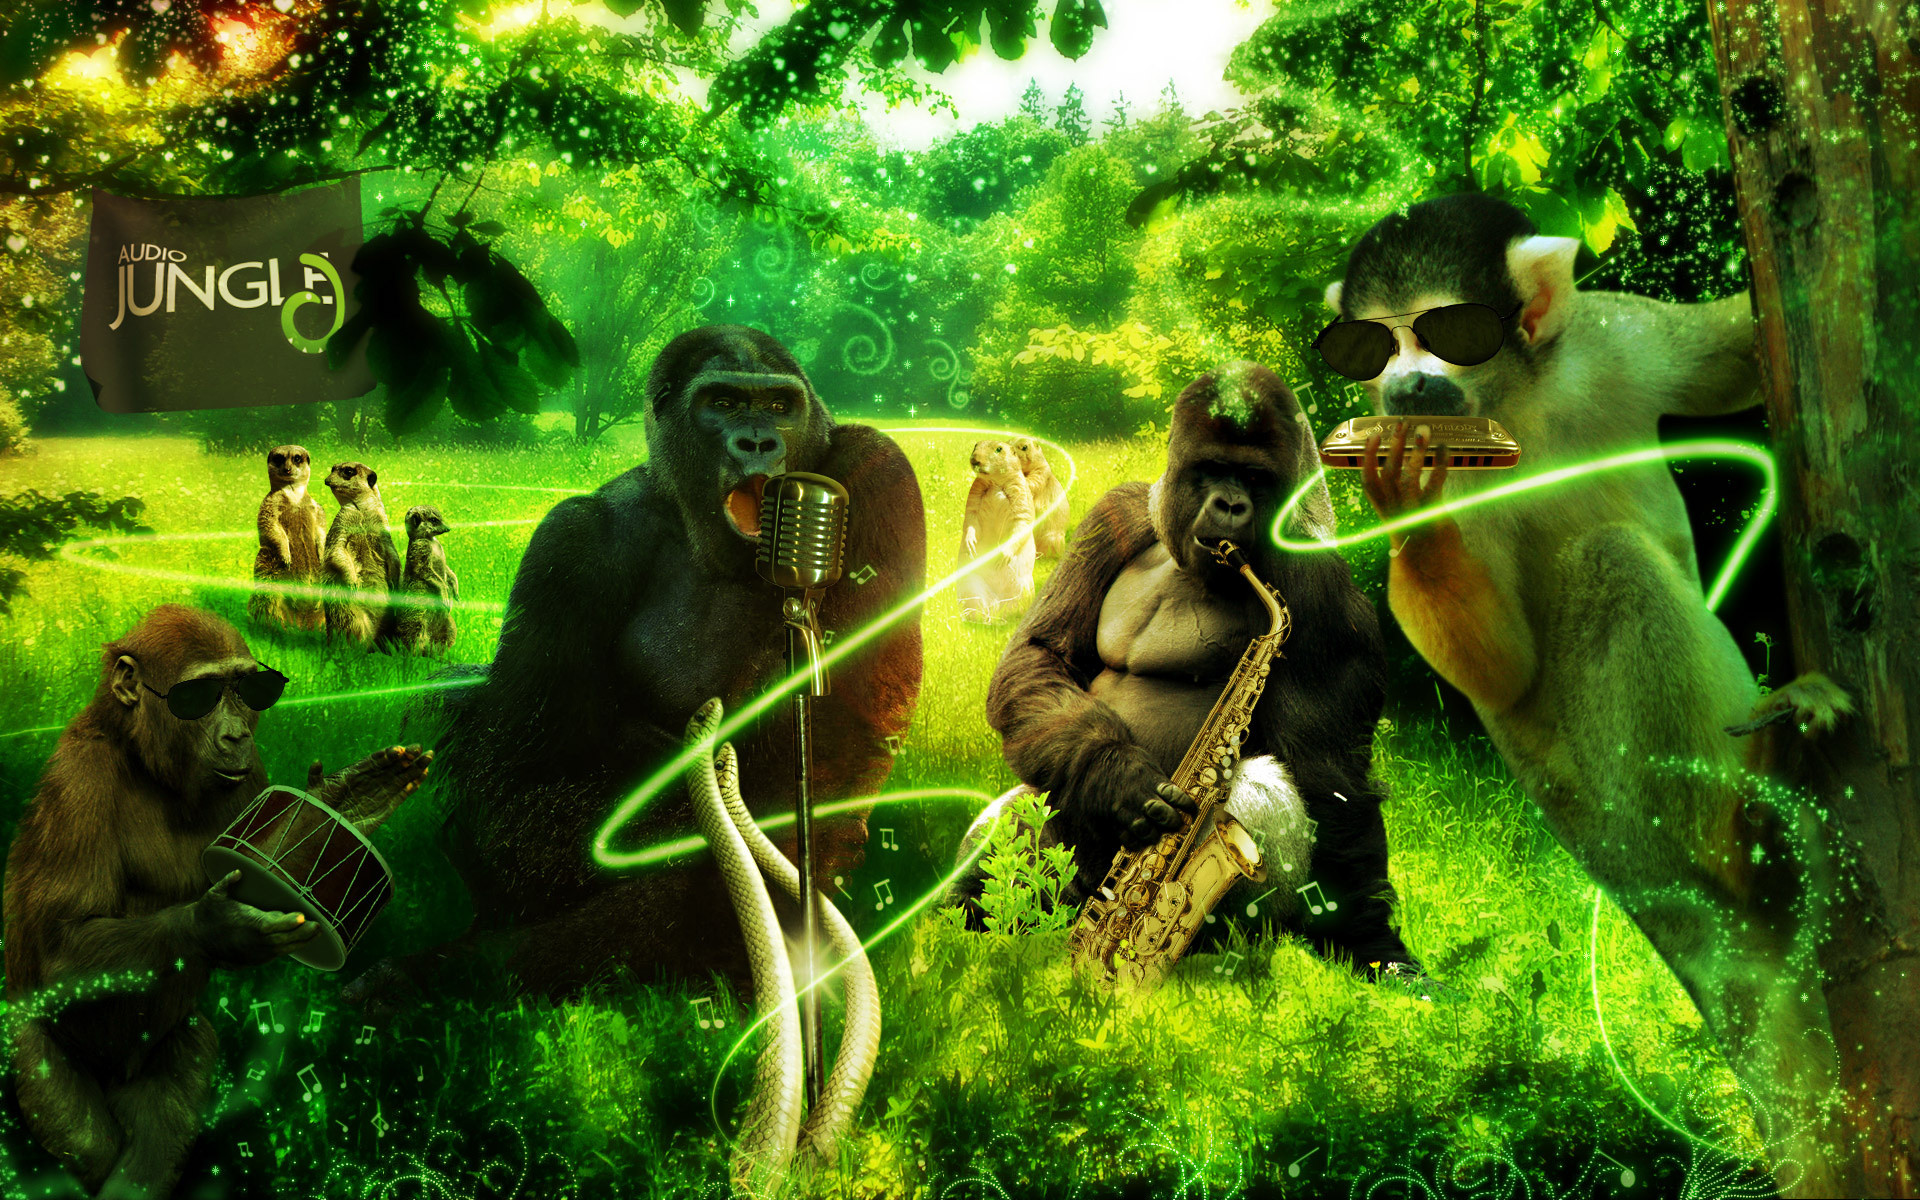 1920x1200 Jungle animals music 3d art gorilla monkey meerkat wallpaper |  |  162822 | WallpaperUP